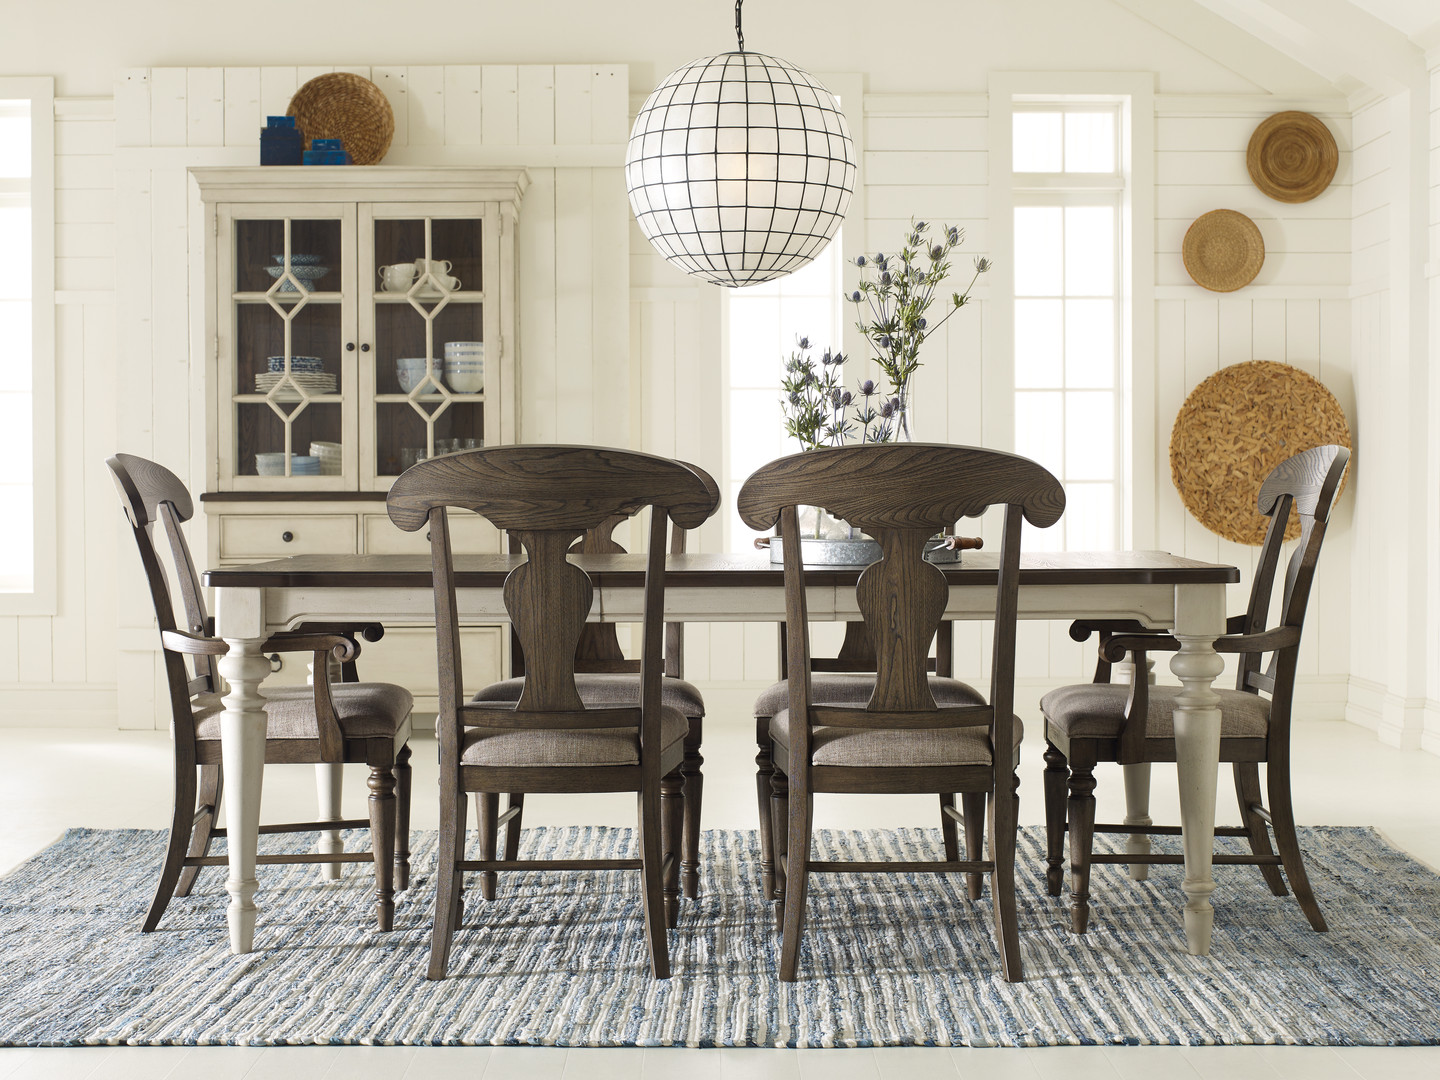 Dining Table with Splat Back Chairs